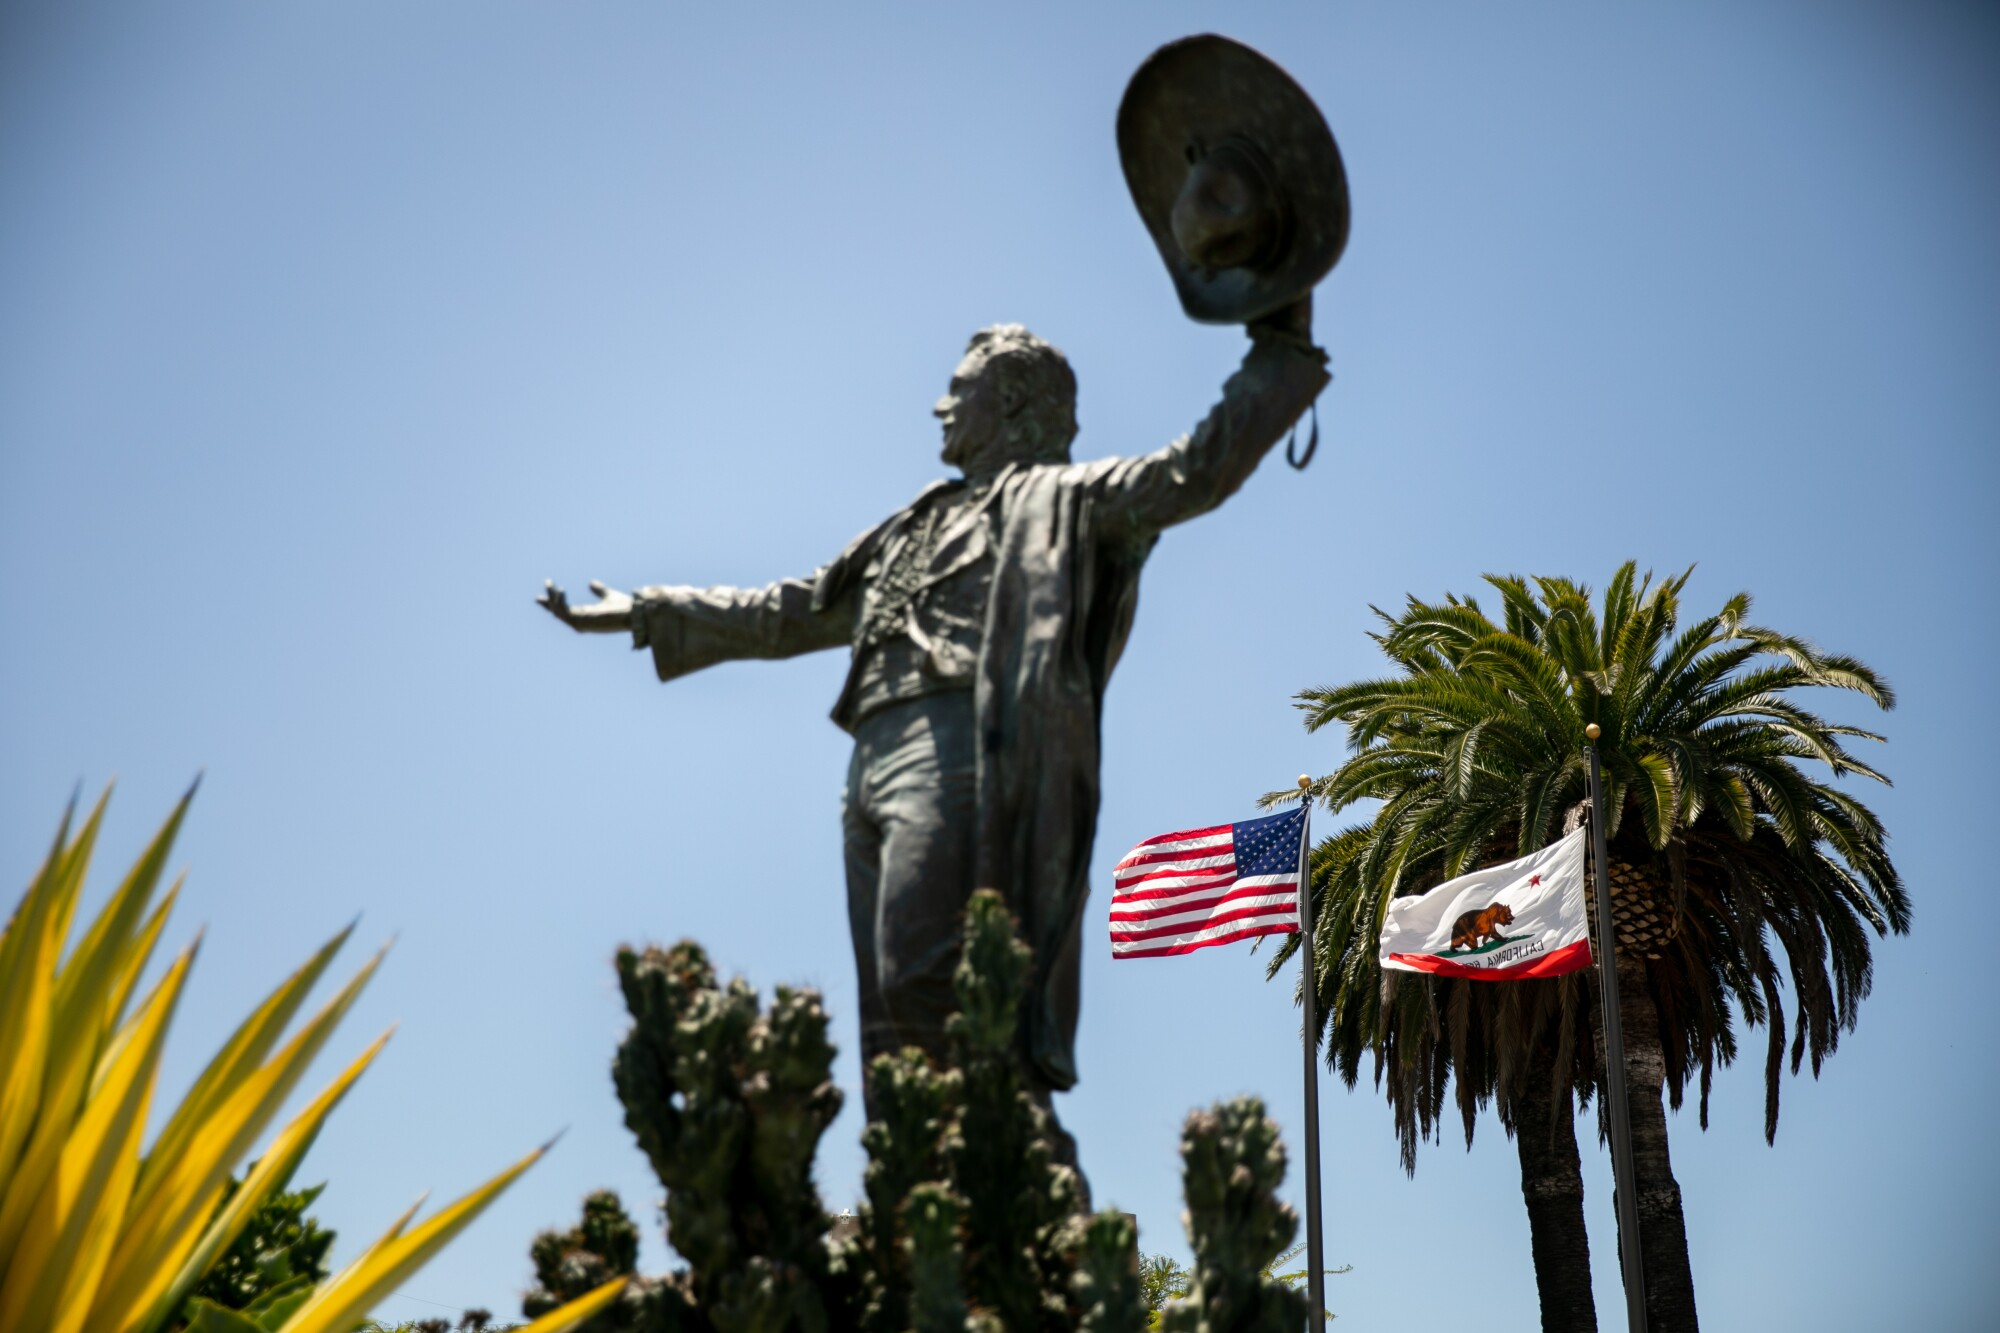 A statue of Don Diego, the late fair ambassador, stands at the gate to the Del Mar Fairgrounds